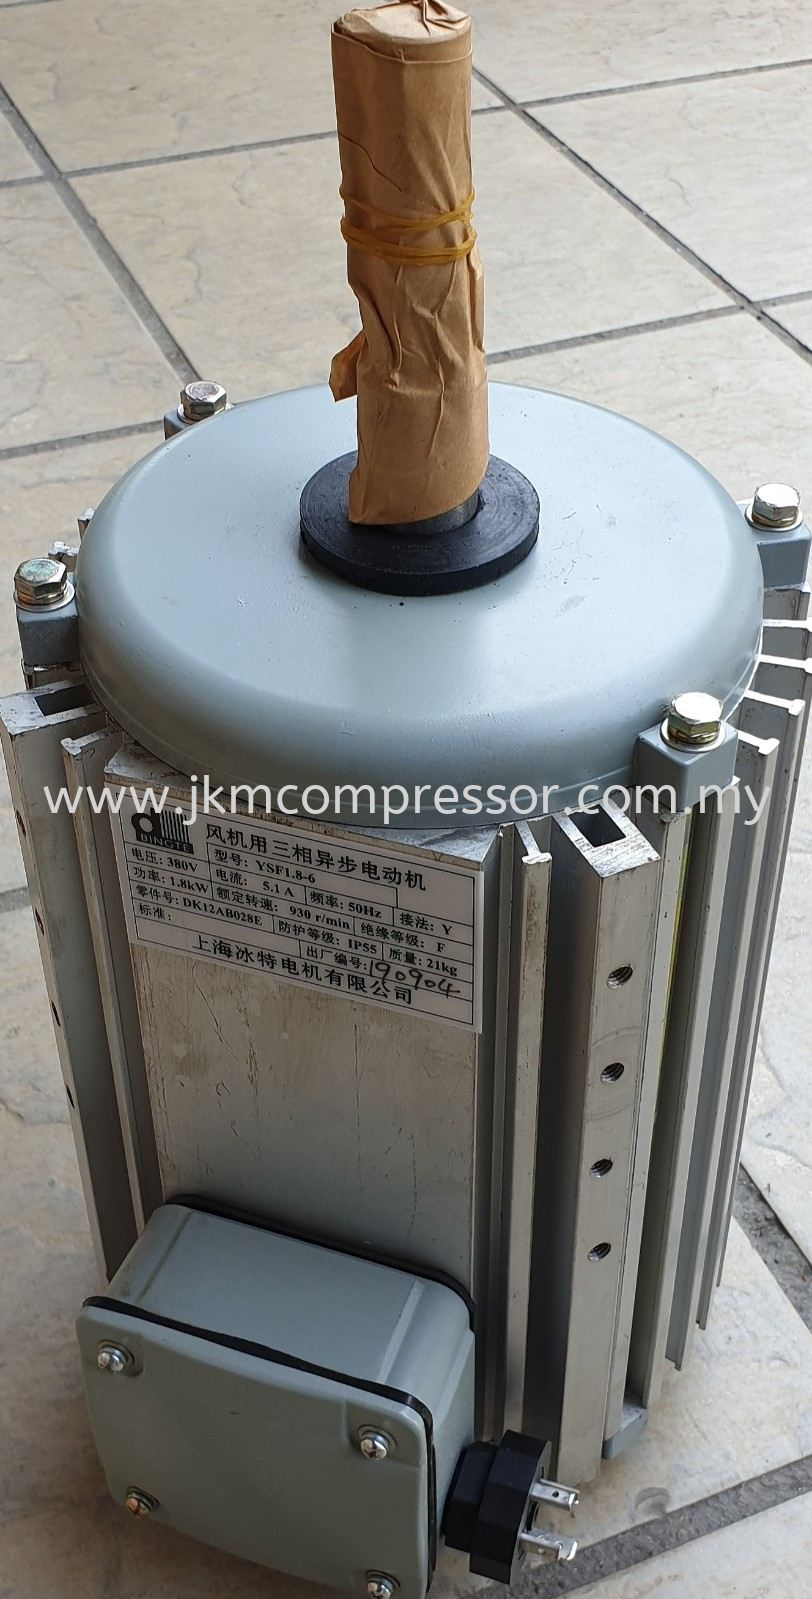 DK12AB028E - CARRIER YSF1.8-6 AIR COOLED CHILLER CONDENSER FAN MOTOR ; 380V 1.8kW